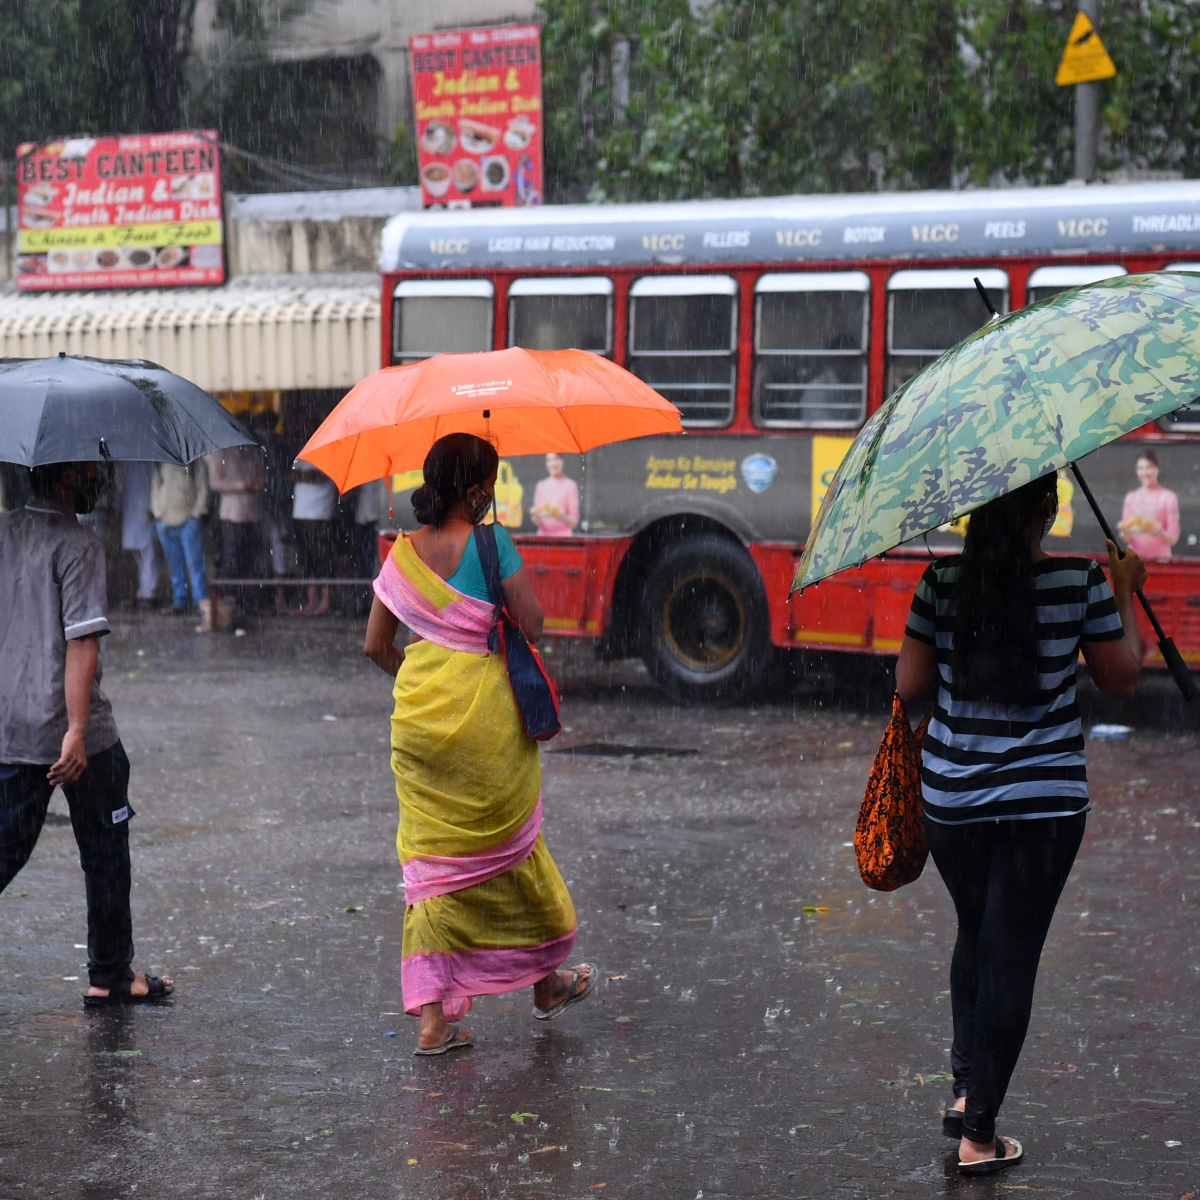 Mumbai weather update: City wakes up to light rain, IMD predicts partly cloudy sky with possibility of drizzle for next 24 hours